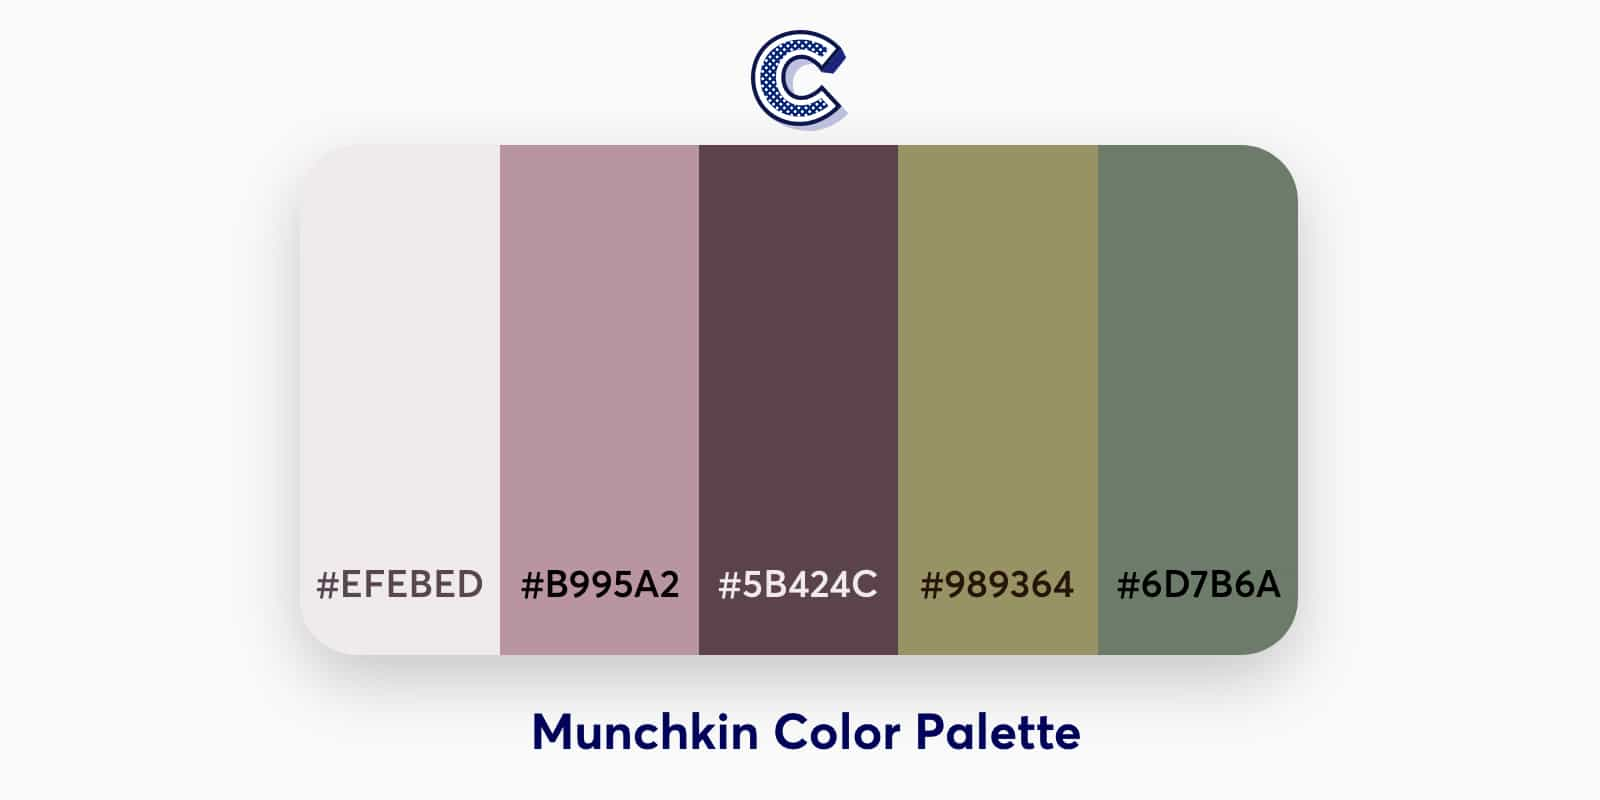 the featured image of munchkin color palette